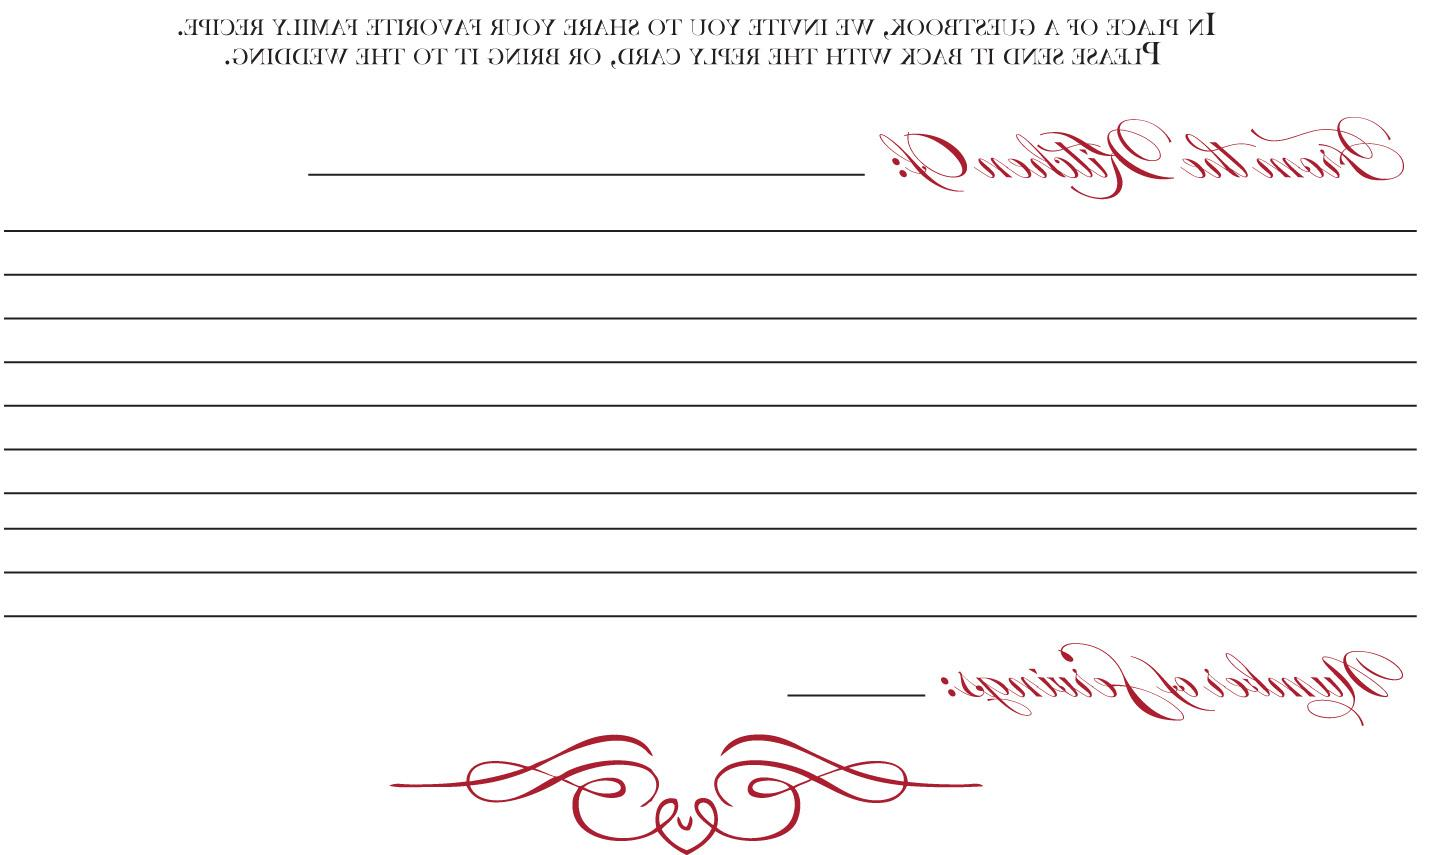 Wedding Recipe Card Template. Recipe Card Bridal Shower Poem. View ...